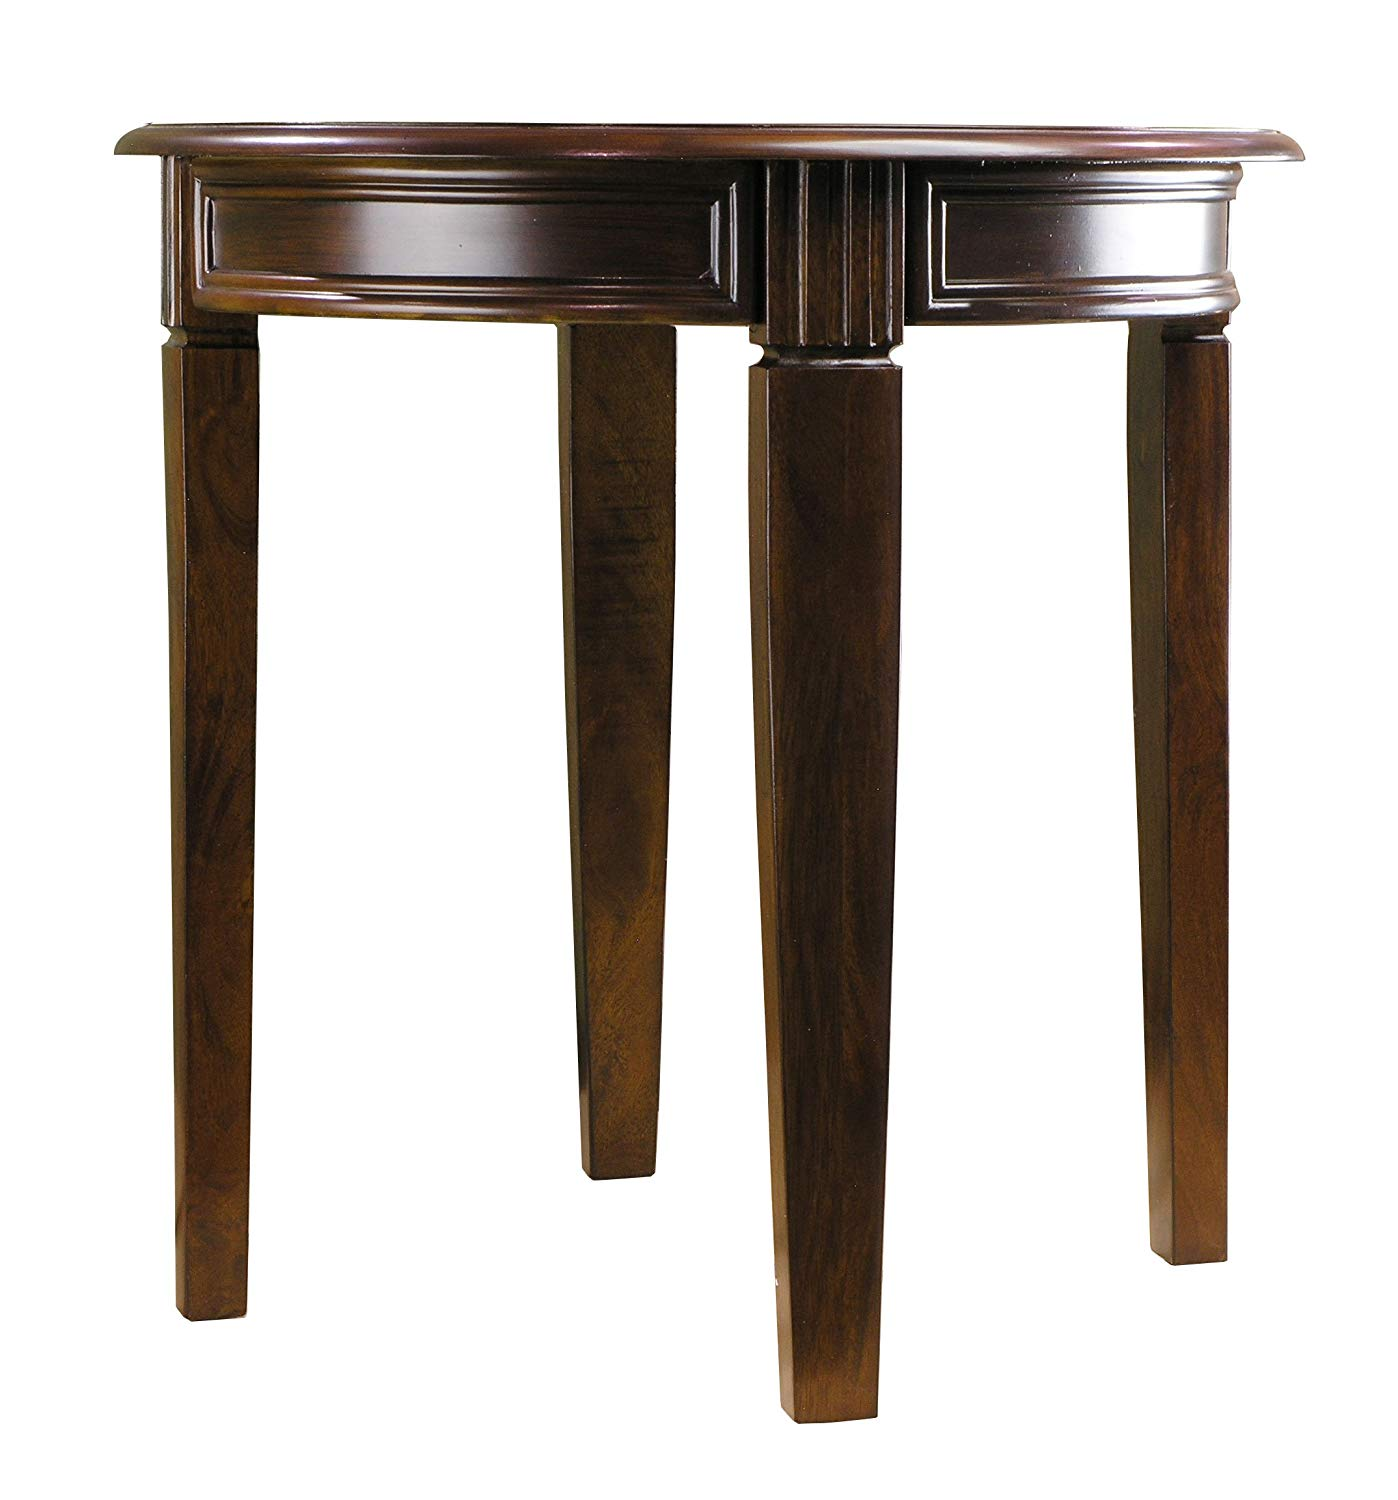 fairview game rooms round accent table chestnut finish kitchen dining calligaris furniture lift coffee inch deep sofa pottery barn glass side rose gold placemats modern lamp